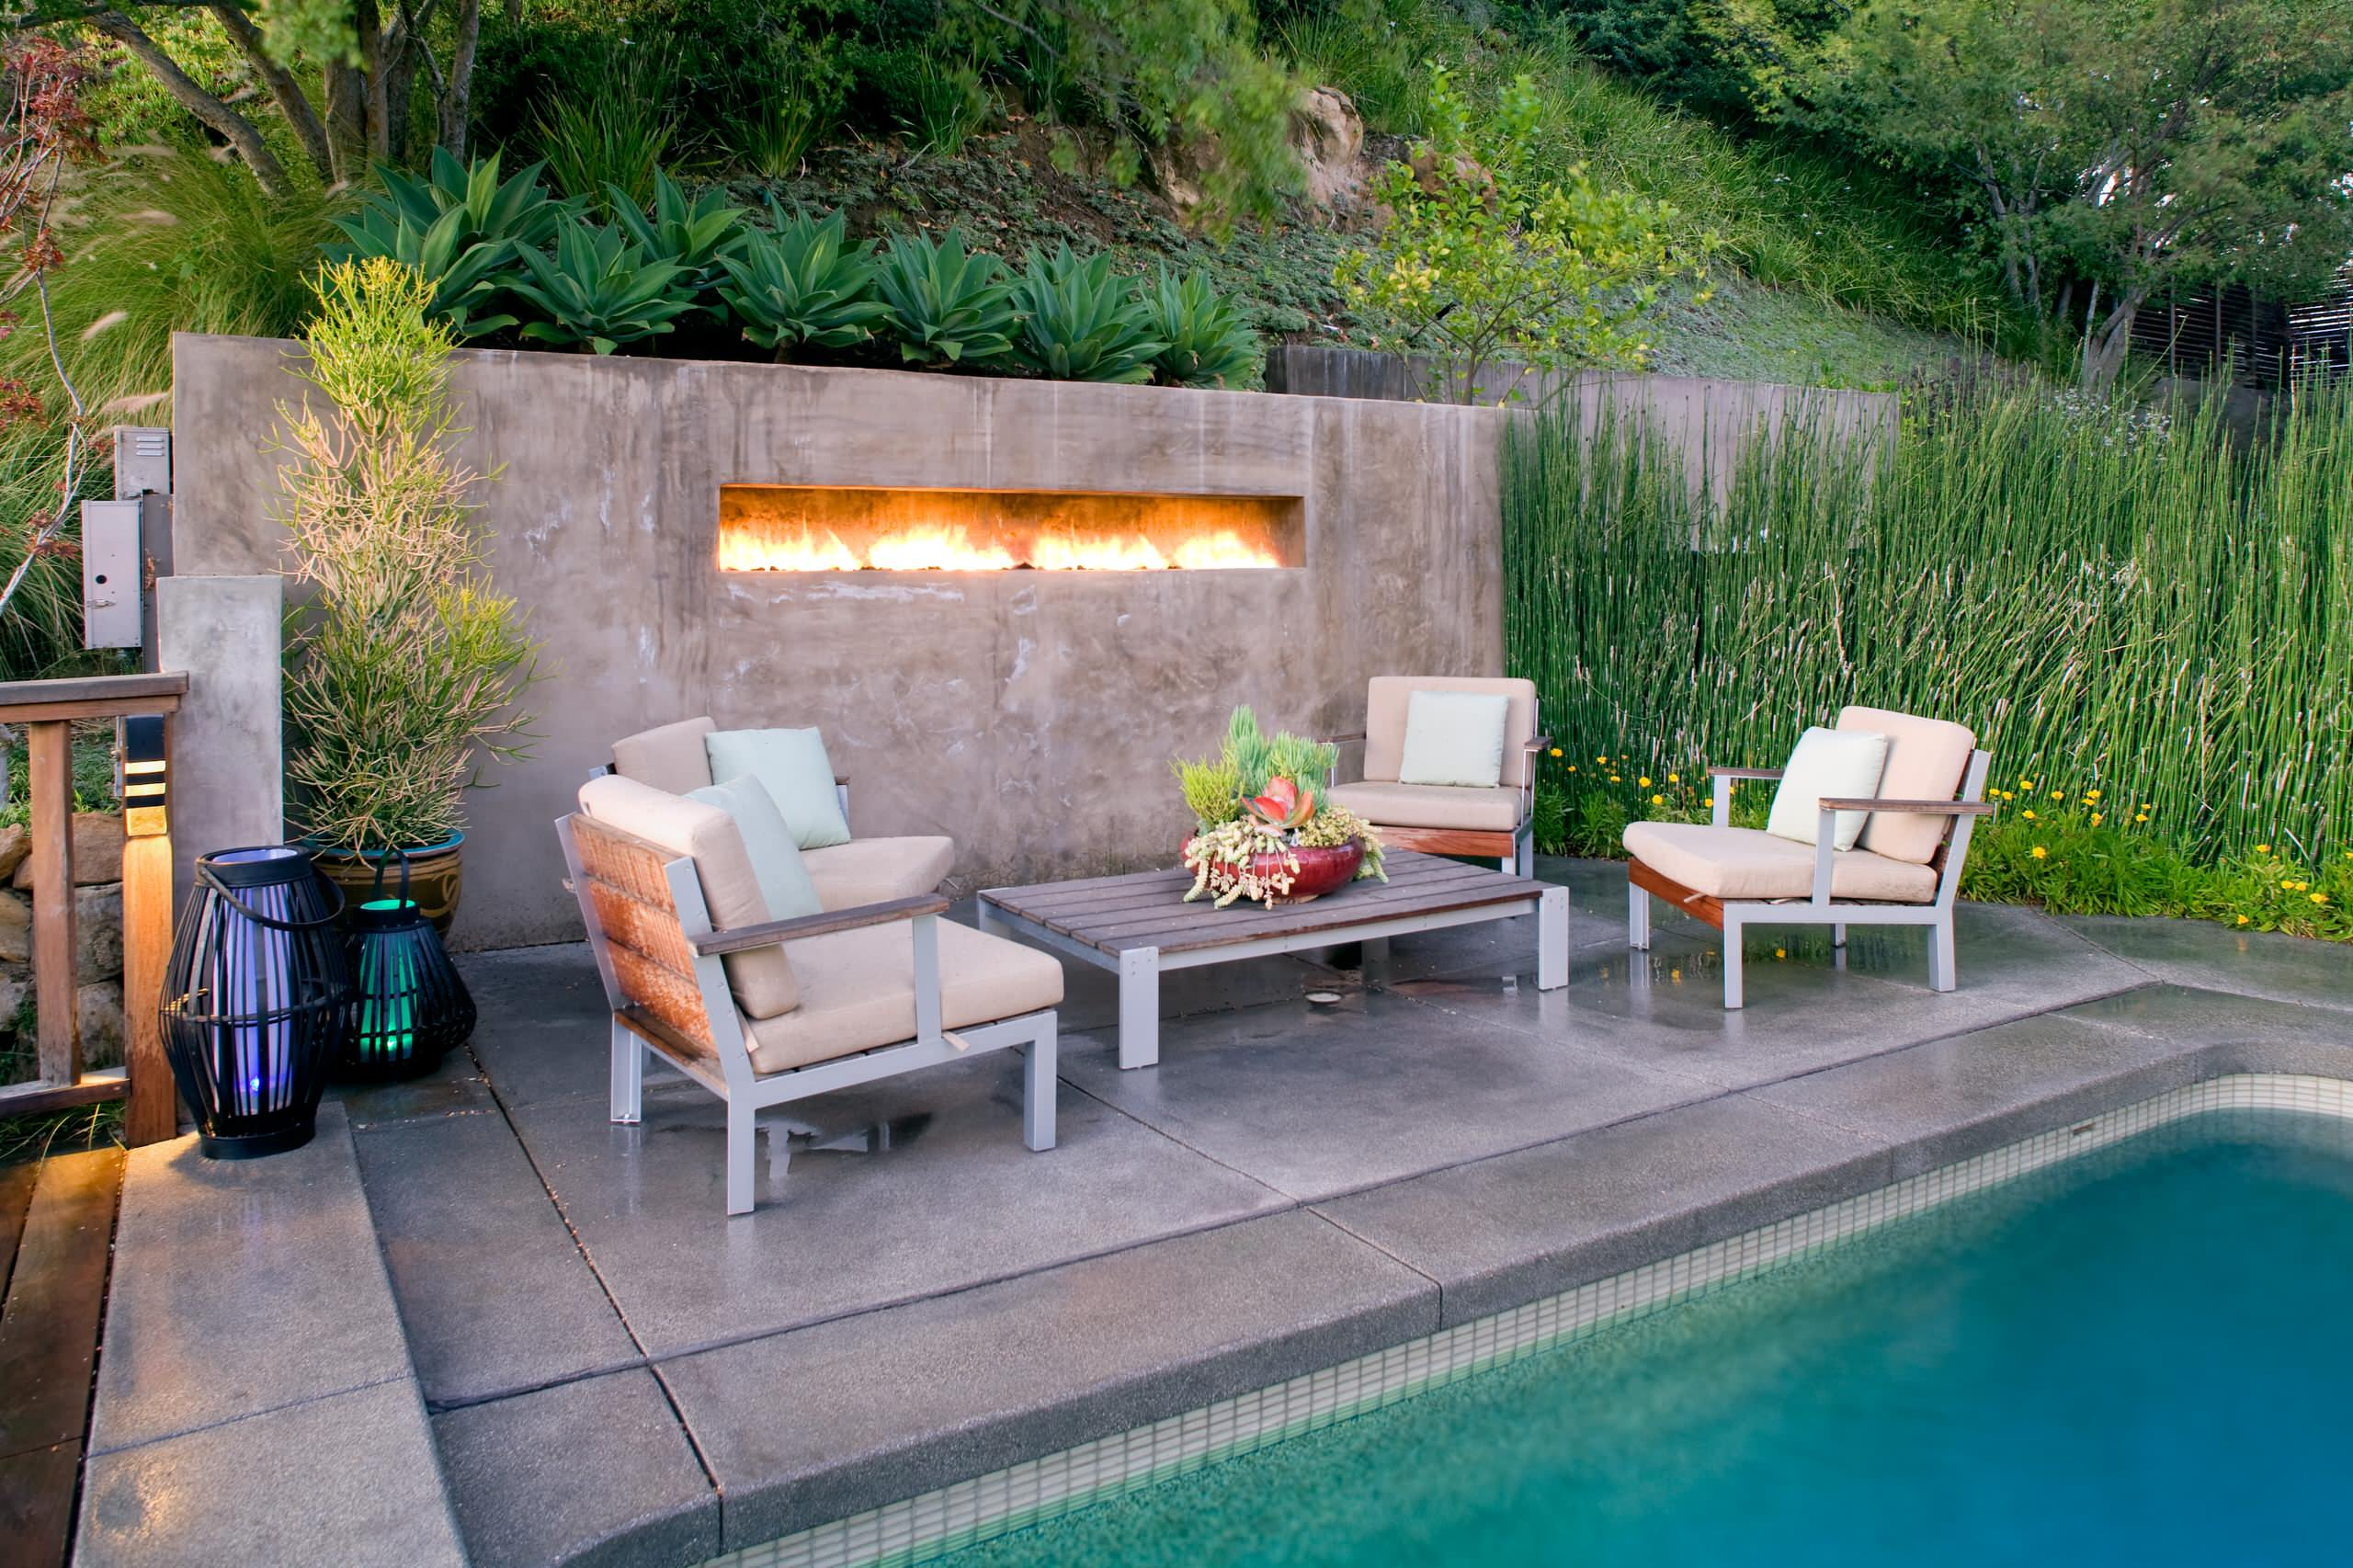 2  A Refreshing Mix Of Fire And Water. 50 Best Patio Ideas For Design Inspiration for 2017